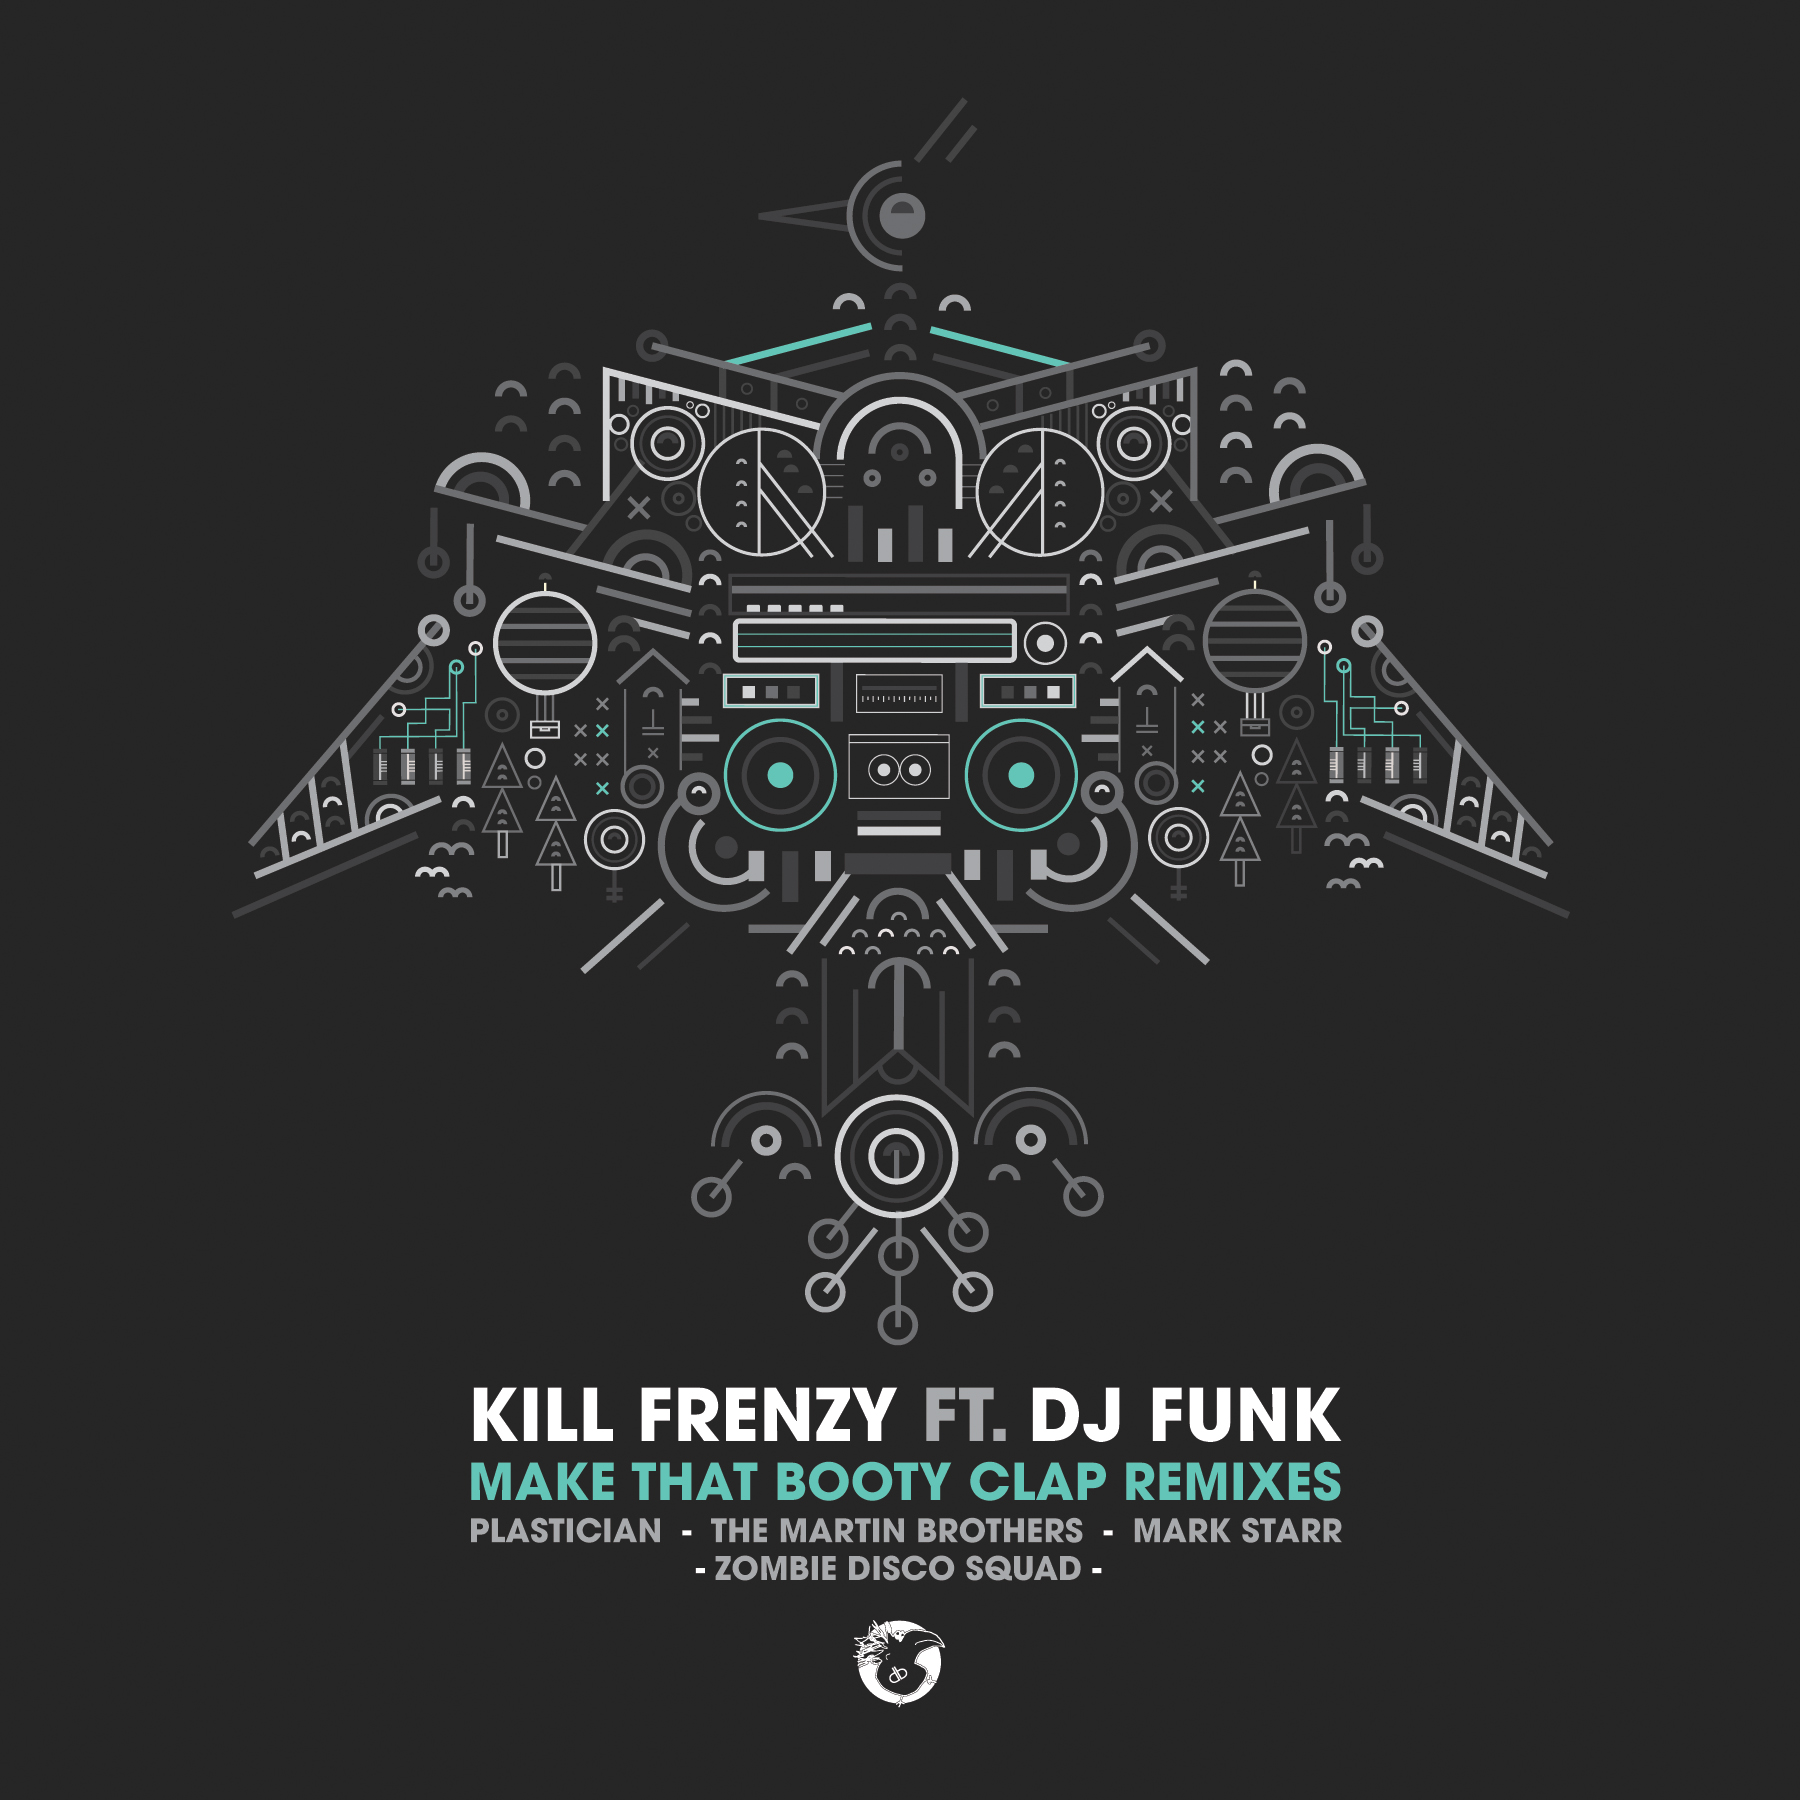 Db092 killfrenzy bootyclapremixes